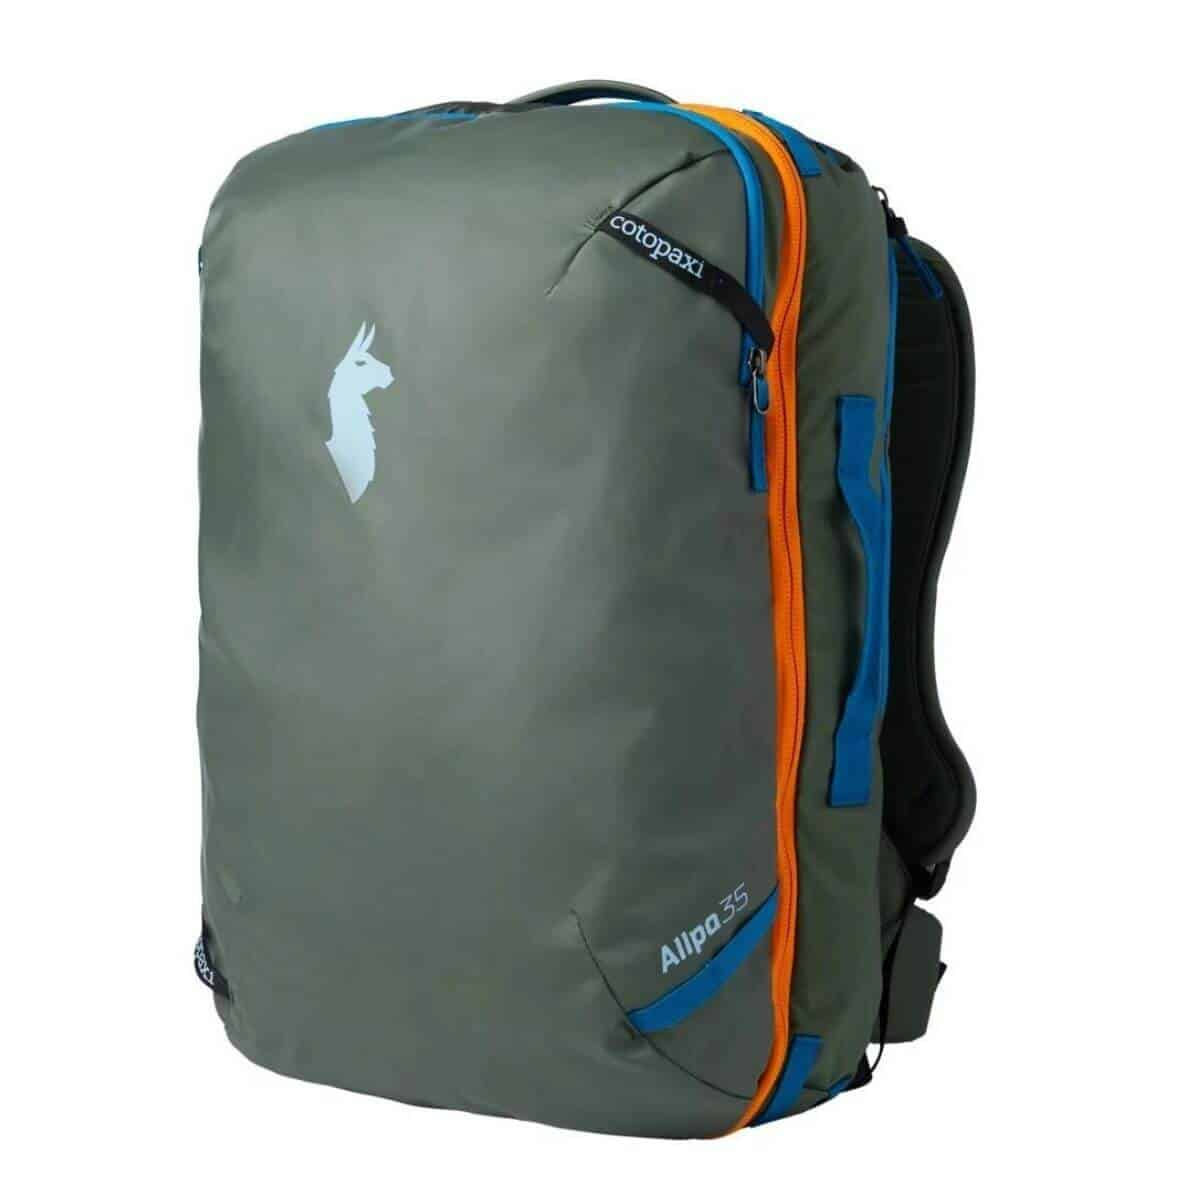 Olive green, orange, and blue backpack.